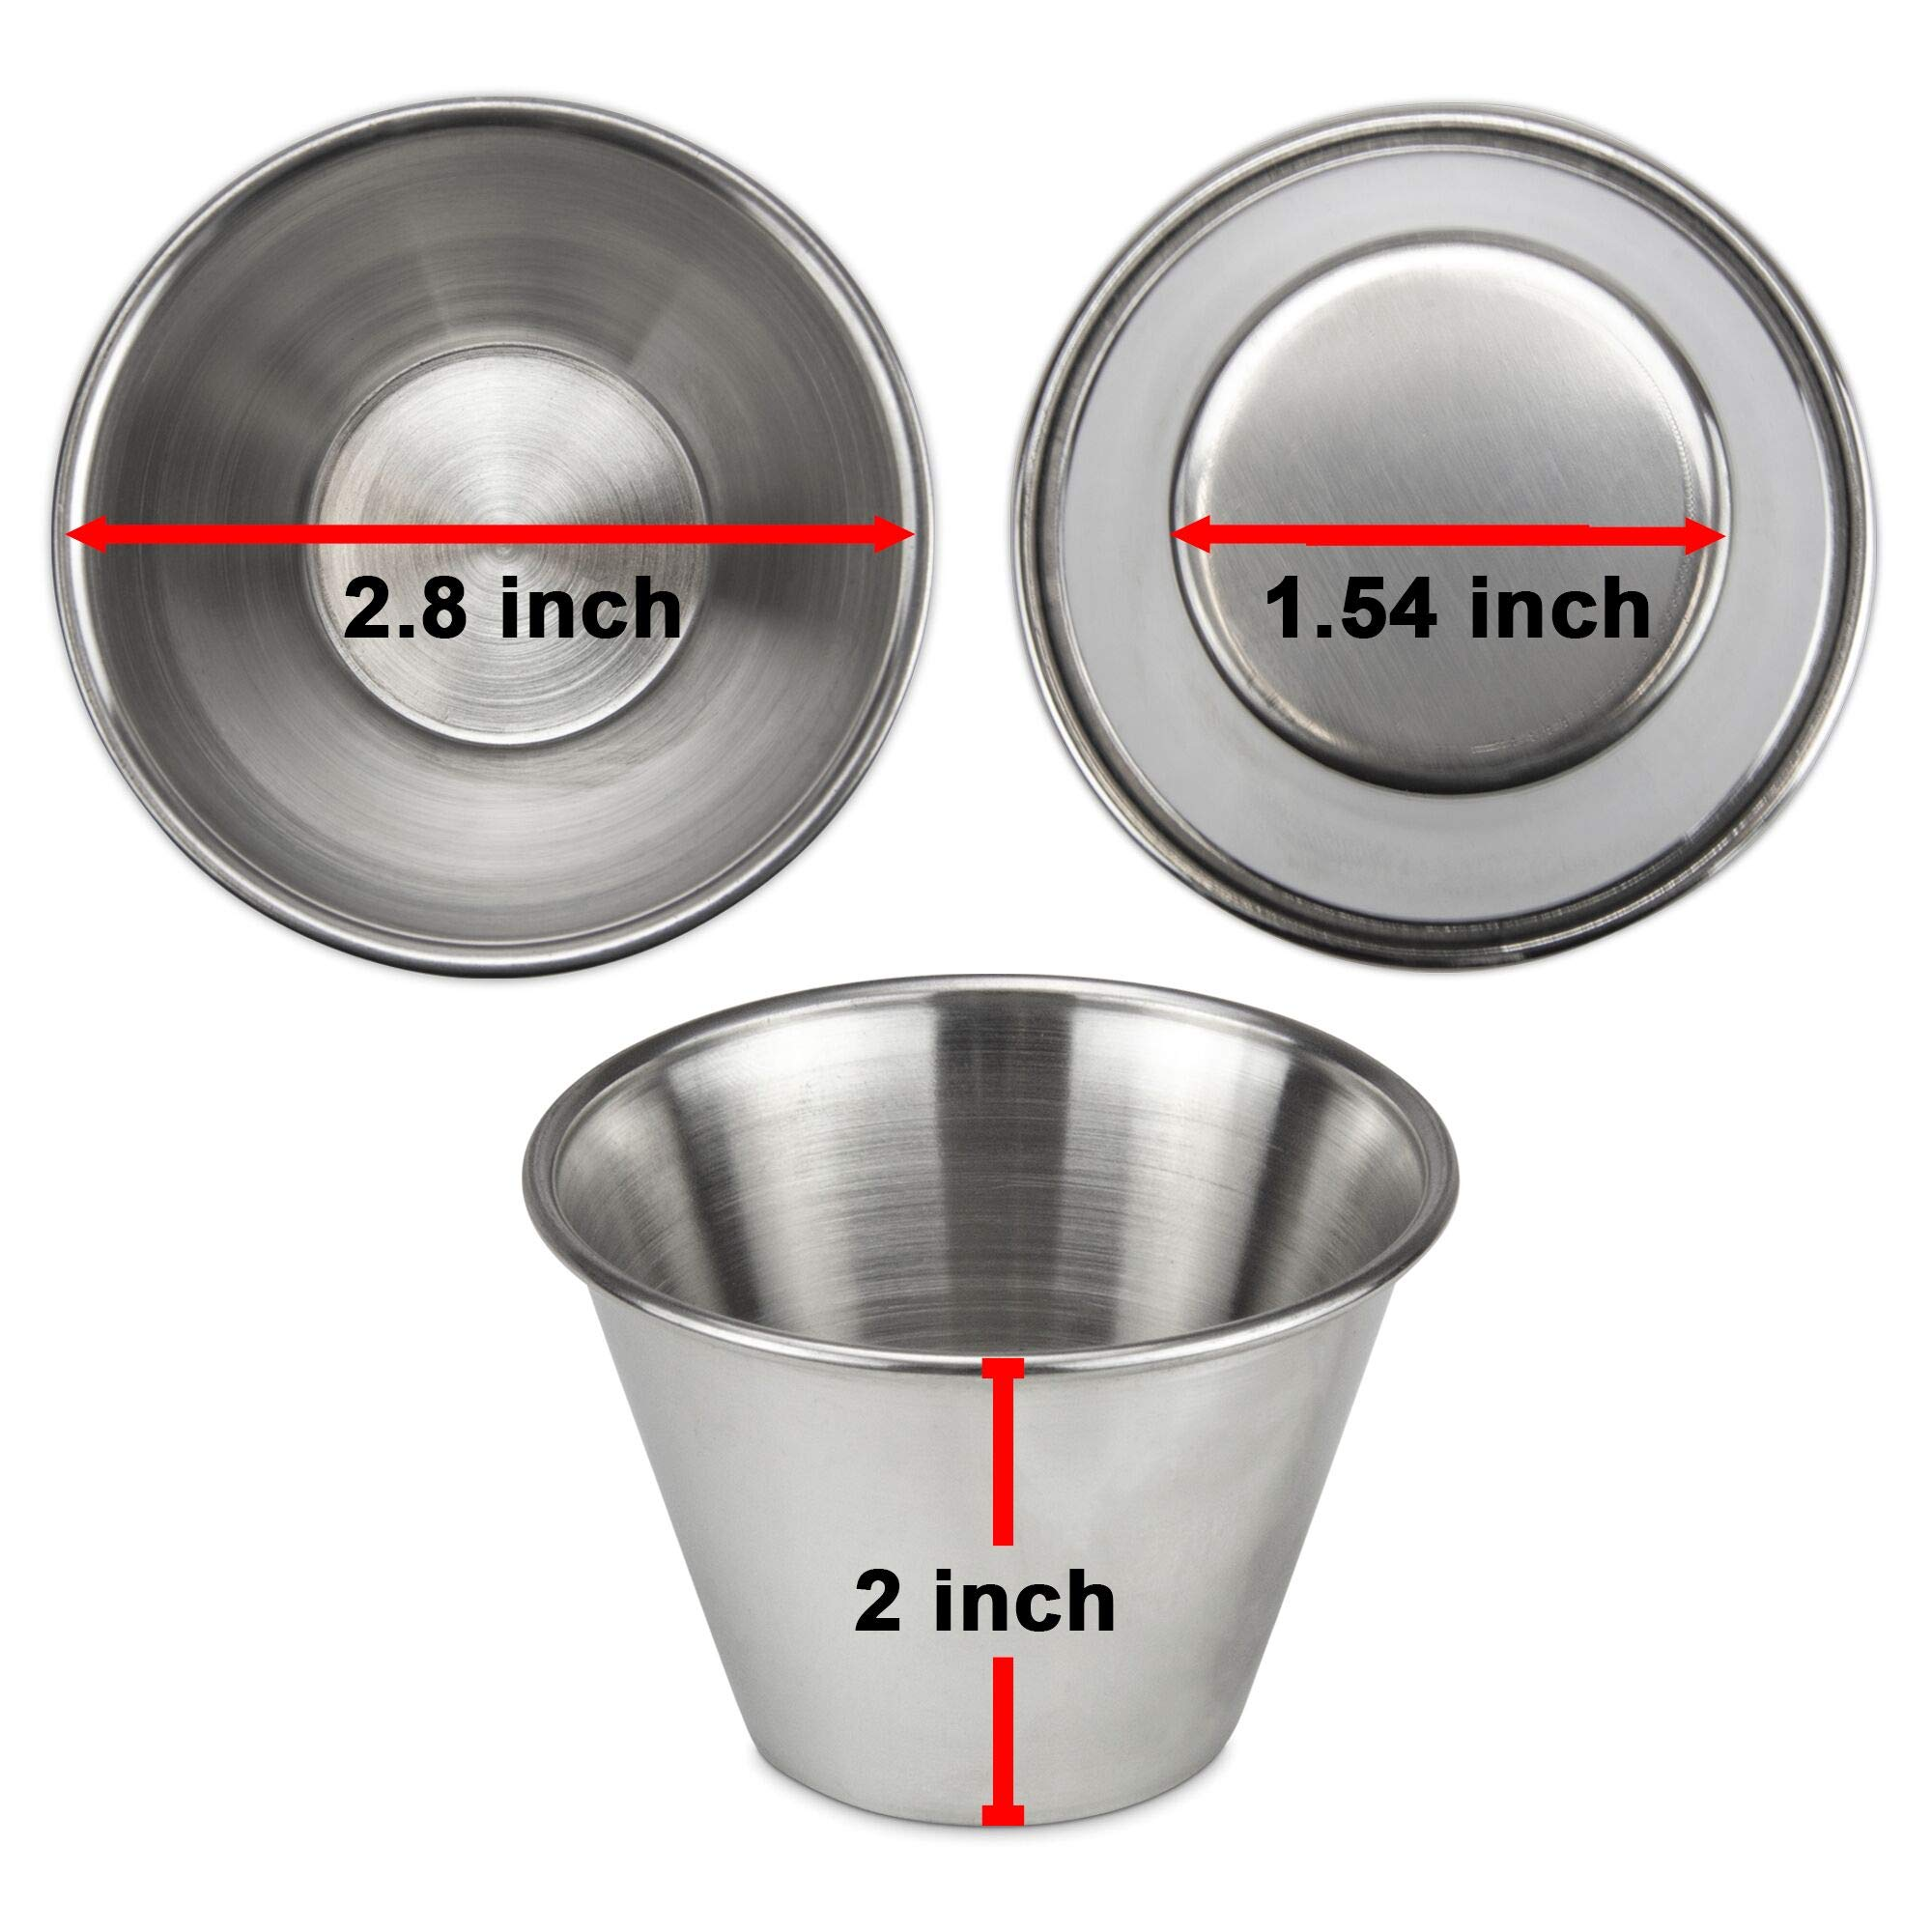 [24 Pack] 4 oz Stainless Steel Sauce Cups - Individual Round Condiments Ramekins, Commercial Grade Safe/Portion Dipping Sauce Kitchen Set by Fit Meal Prep (Image #4)